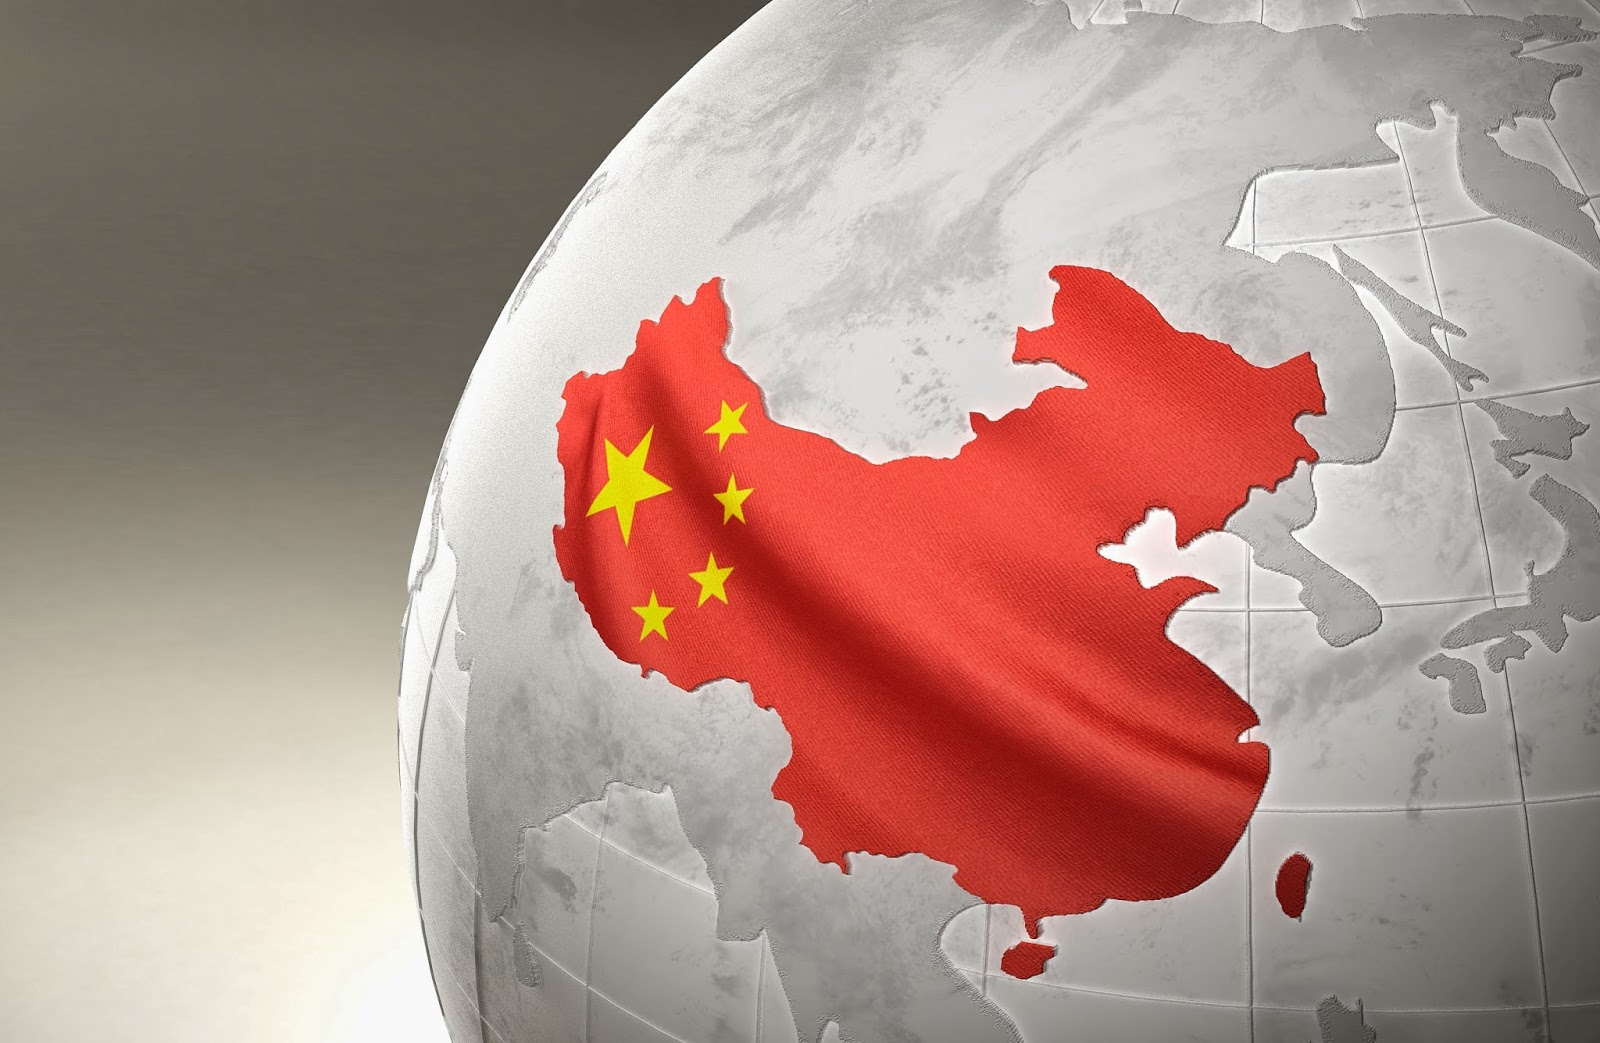 the economic growth and rise to world power of china If interest rates rise, if growth slows too fast, if the government cuts back on stimulus, these loans will probably default that could set off a collapse in china similar to the 2008 financial crisis in the united states.